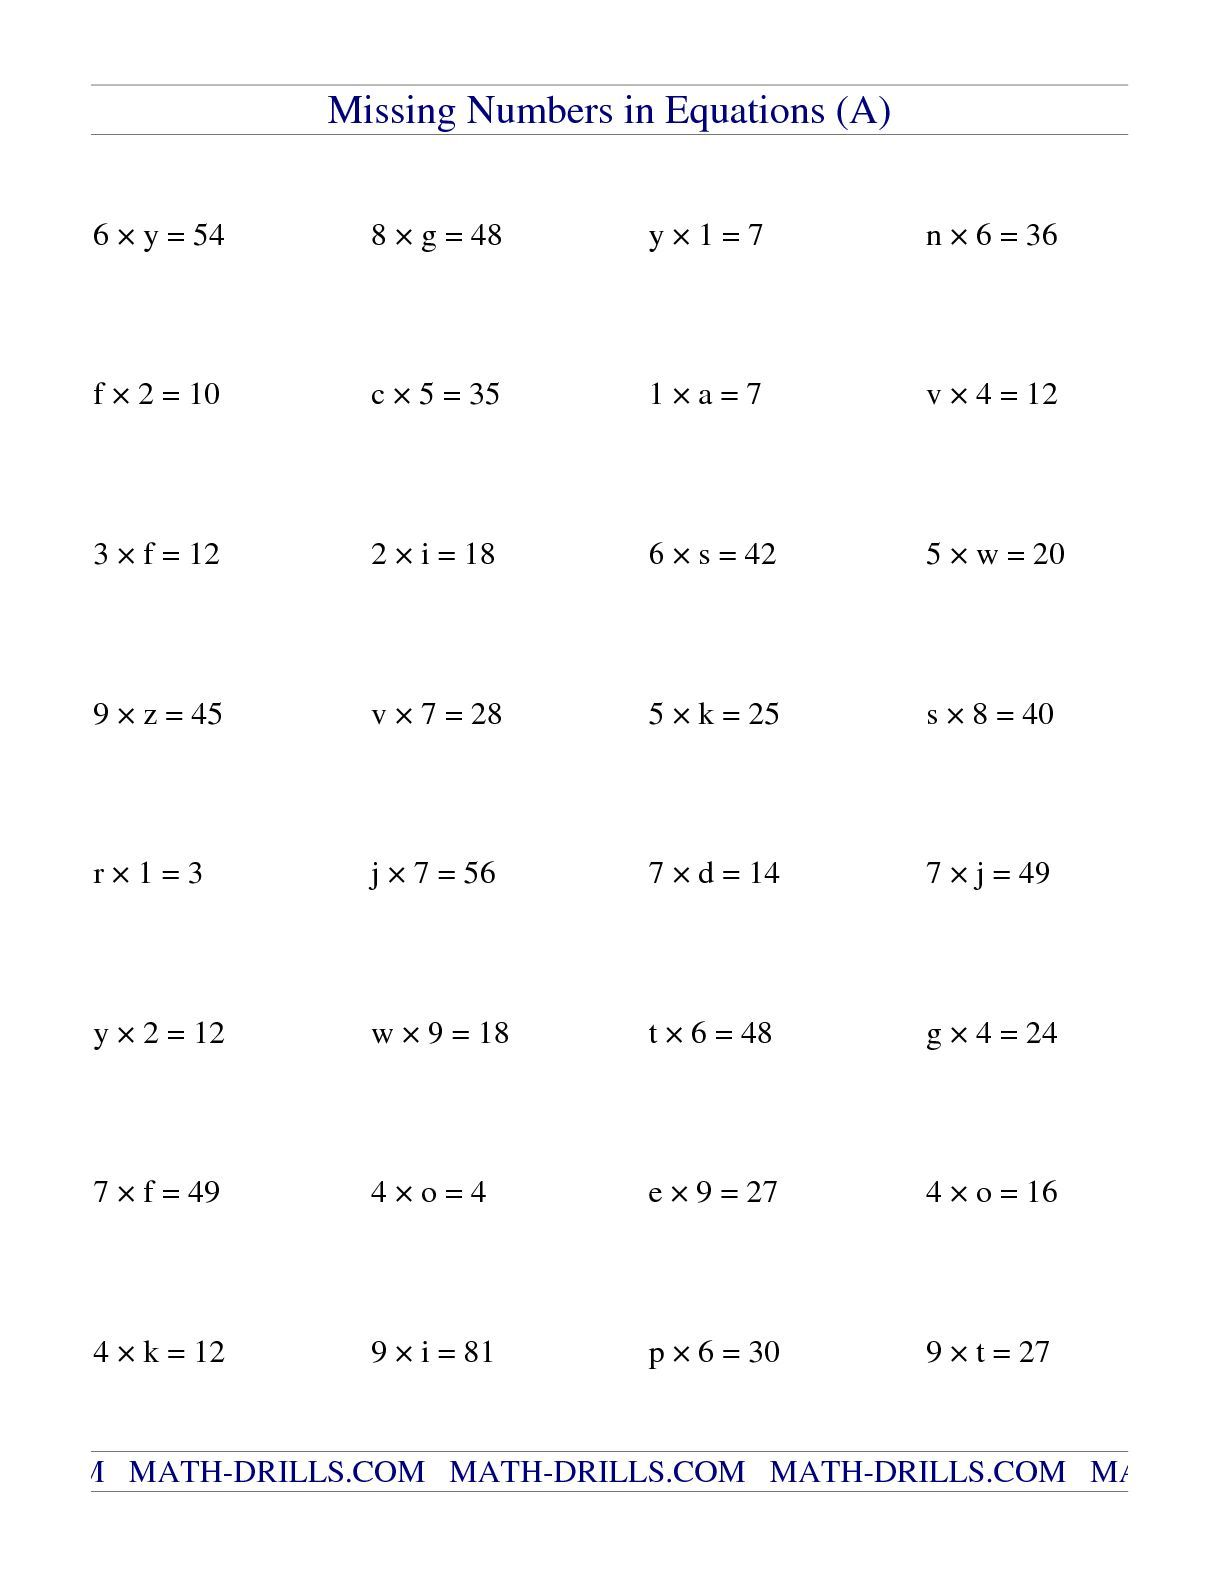 The Missing Numbers In Equations Variables